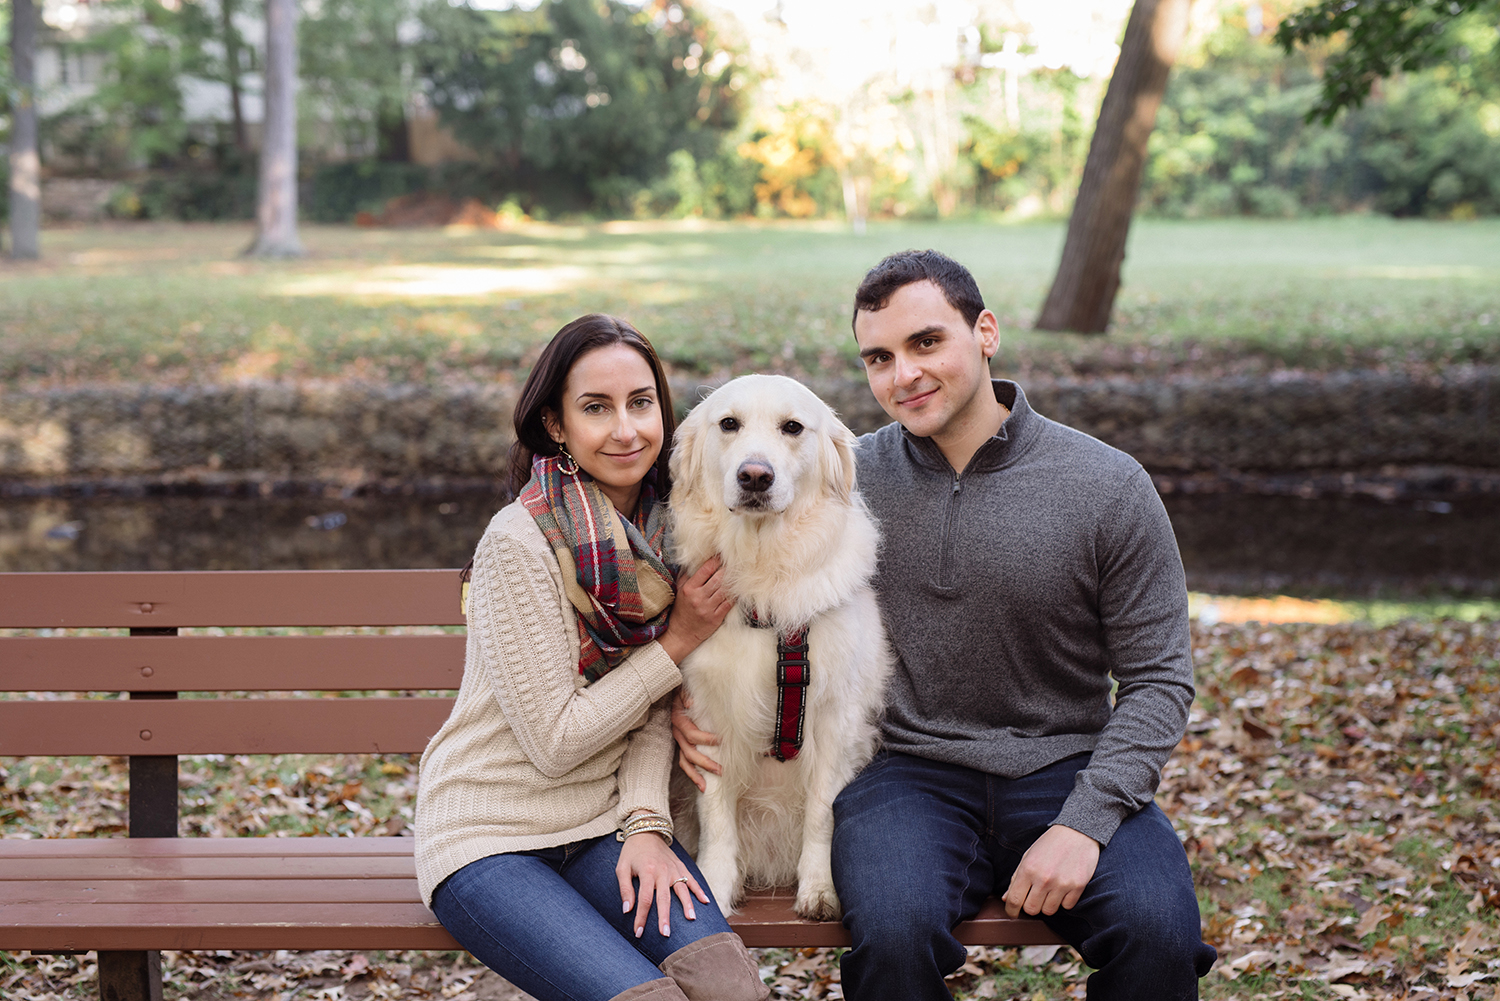 Melissa+Jeff- Local Park Engagement Session with Dog- Booth Park Nutley- New Jersey-Olivia Christina Photo-95.jpg